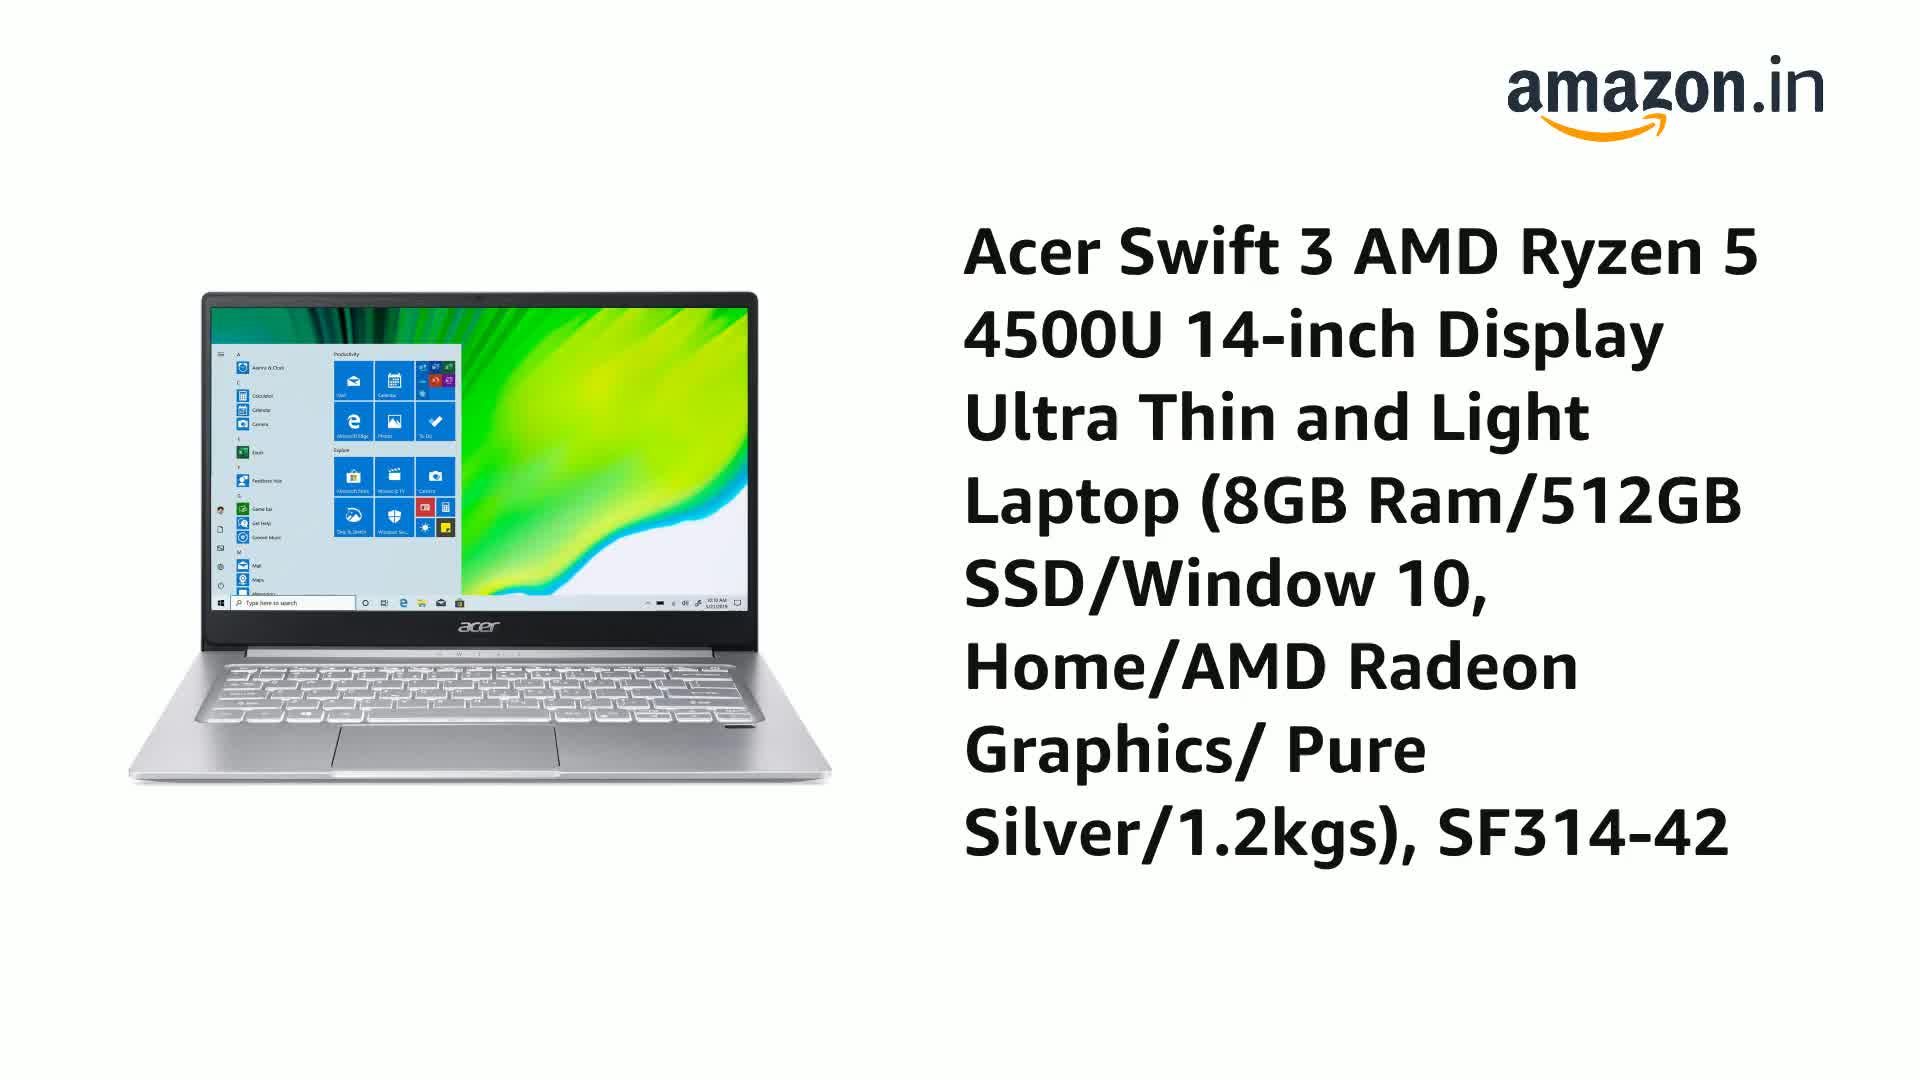 Acer Swift 3 AMD Ryzen 5 4500U 14-inch Display Ultra Thin and Light Laptop (8GB Ram/512GB SSD/Window 10, Home/AMD Radeon…